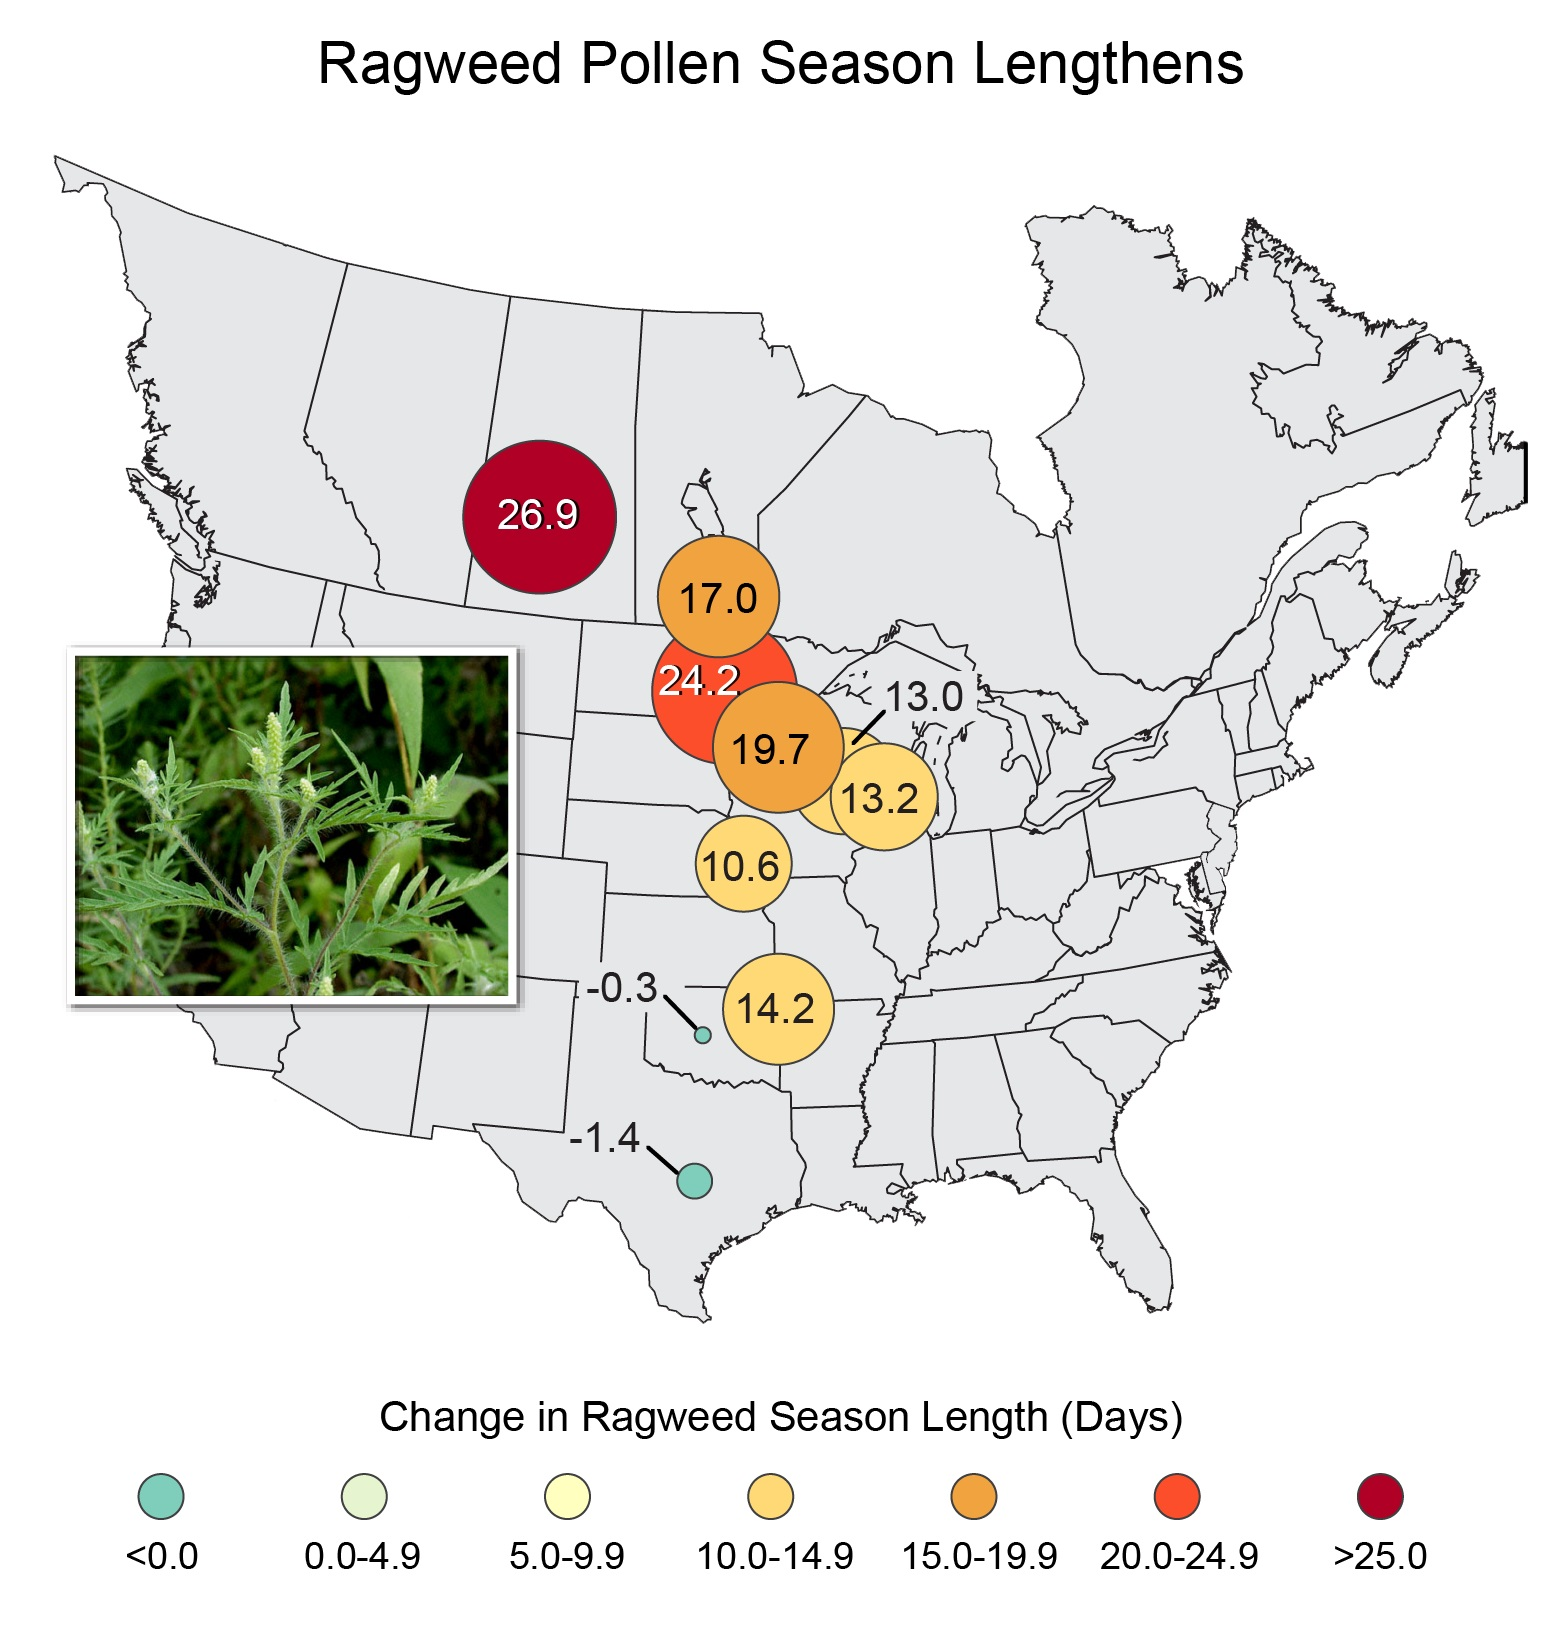 map shows for how long ragweed pollen season has changed from 1995 to 2005